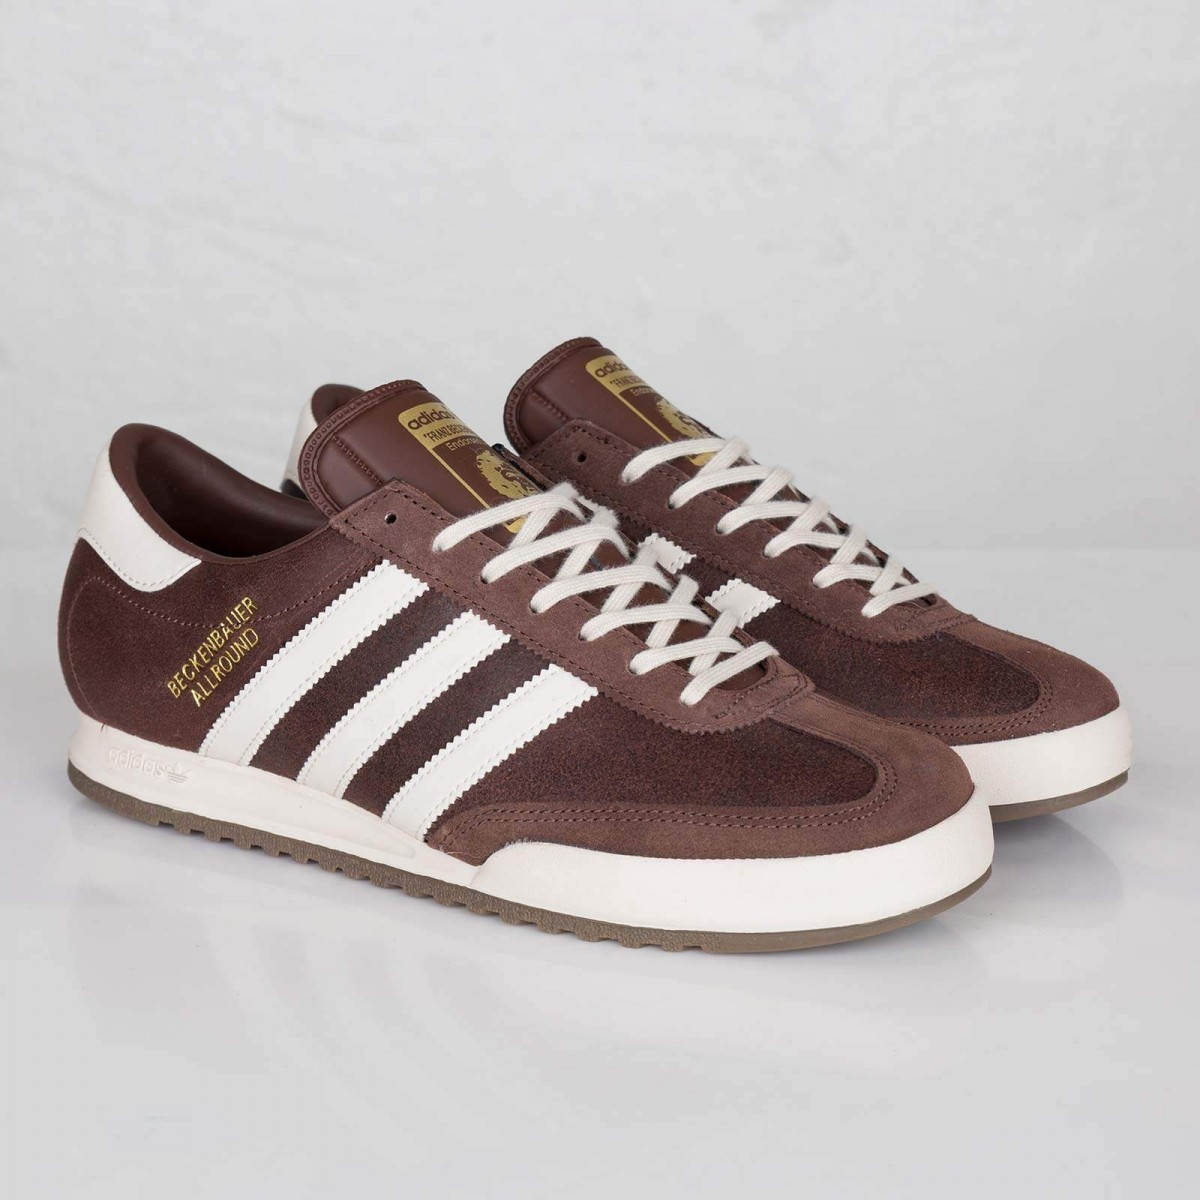 ... adidas beckenbauer allround shoes ... UPESOZO